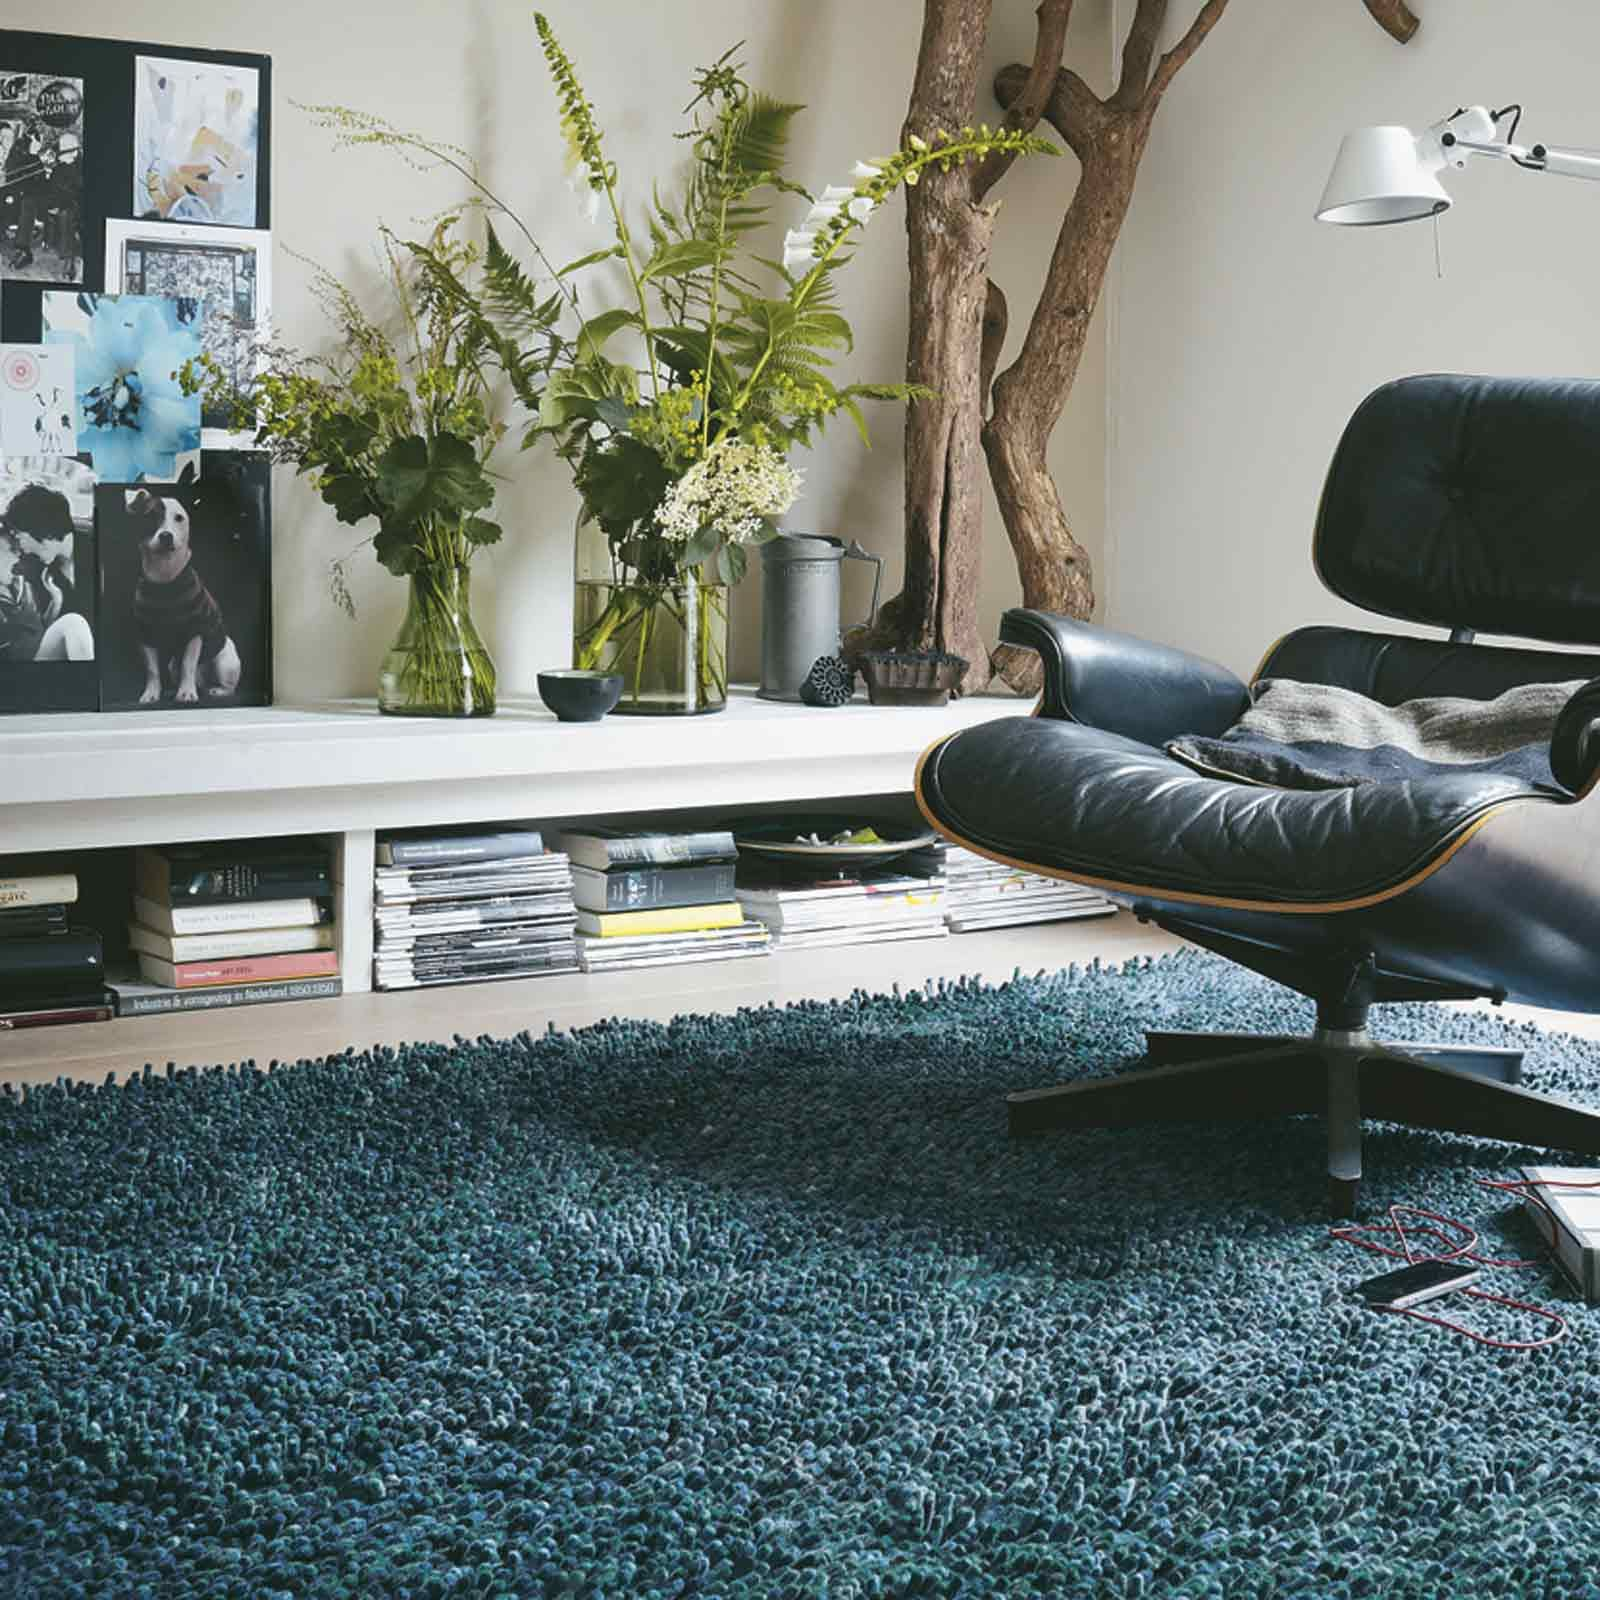 Steel rugs are made in the Netherlands on axminster looms and feature a felted, 100% pure wool pile. The thick blue and green yarns have been developed using innovative processes to offer superior durability and reduced shedding of the wool fibres. #ShaggyRugs #ModernRugs #InteriorDesign